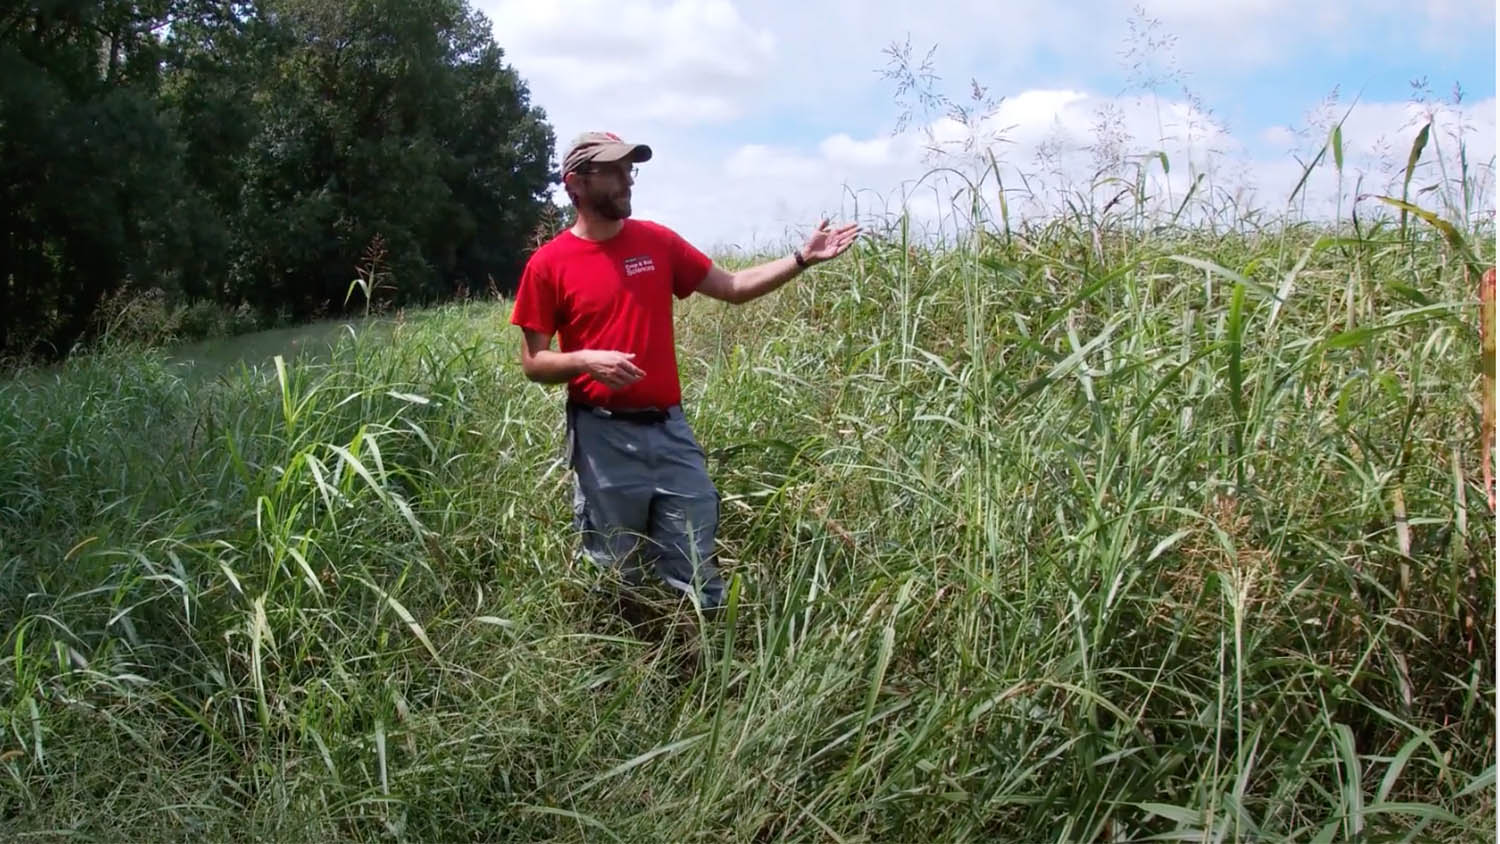 Man in red shirt standing on a grassy hill